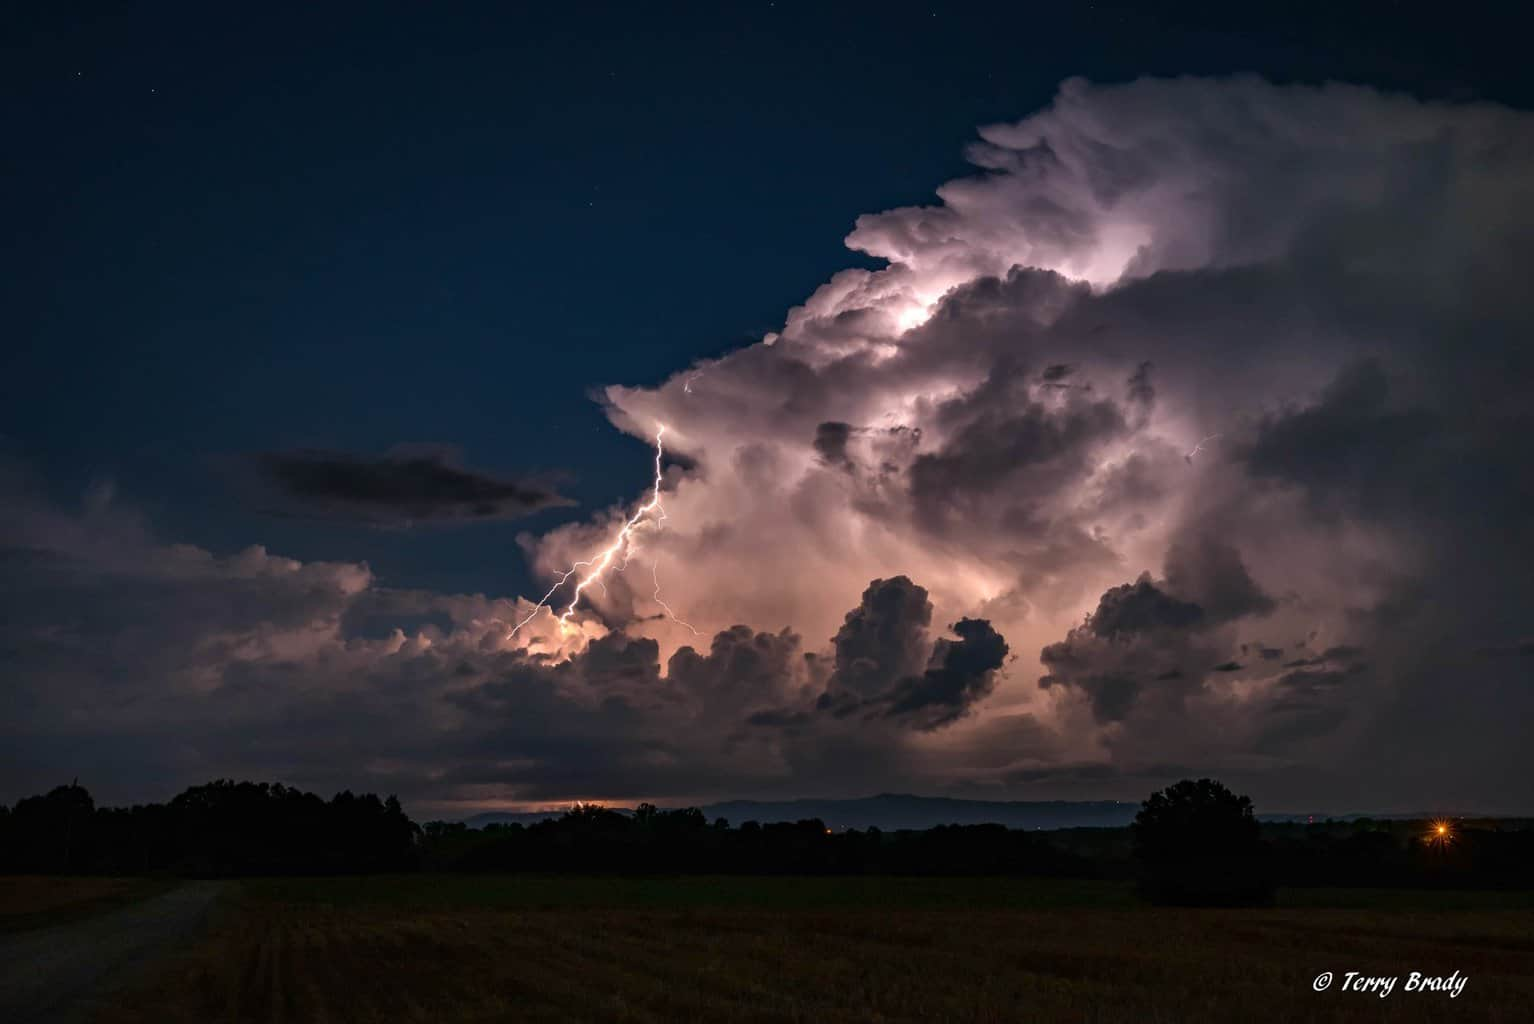 Storm over the south mountains of North Carolina.